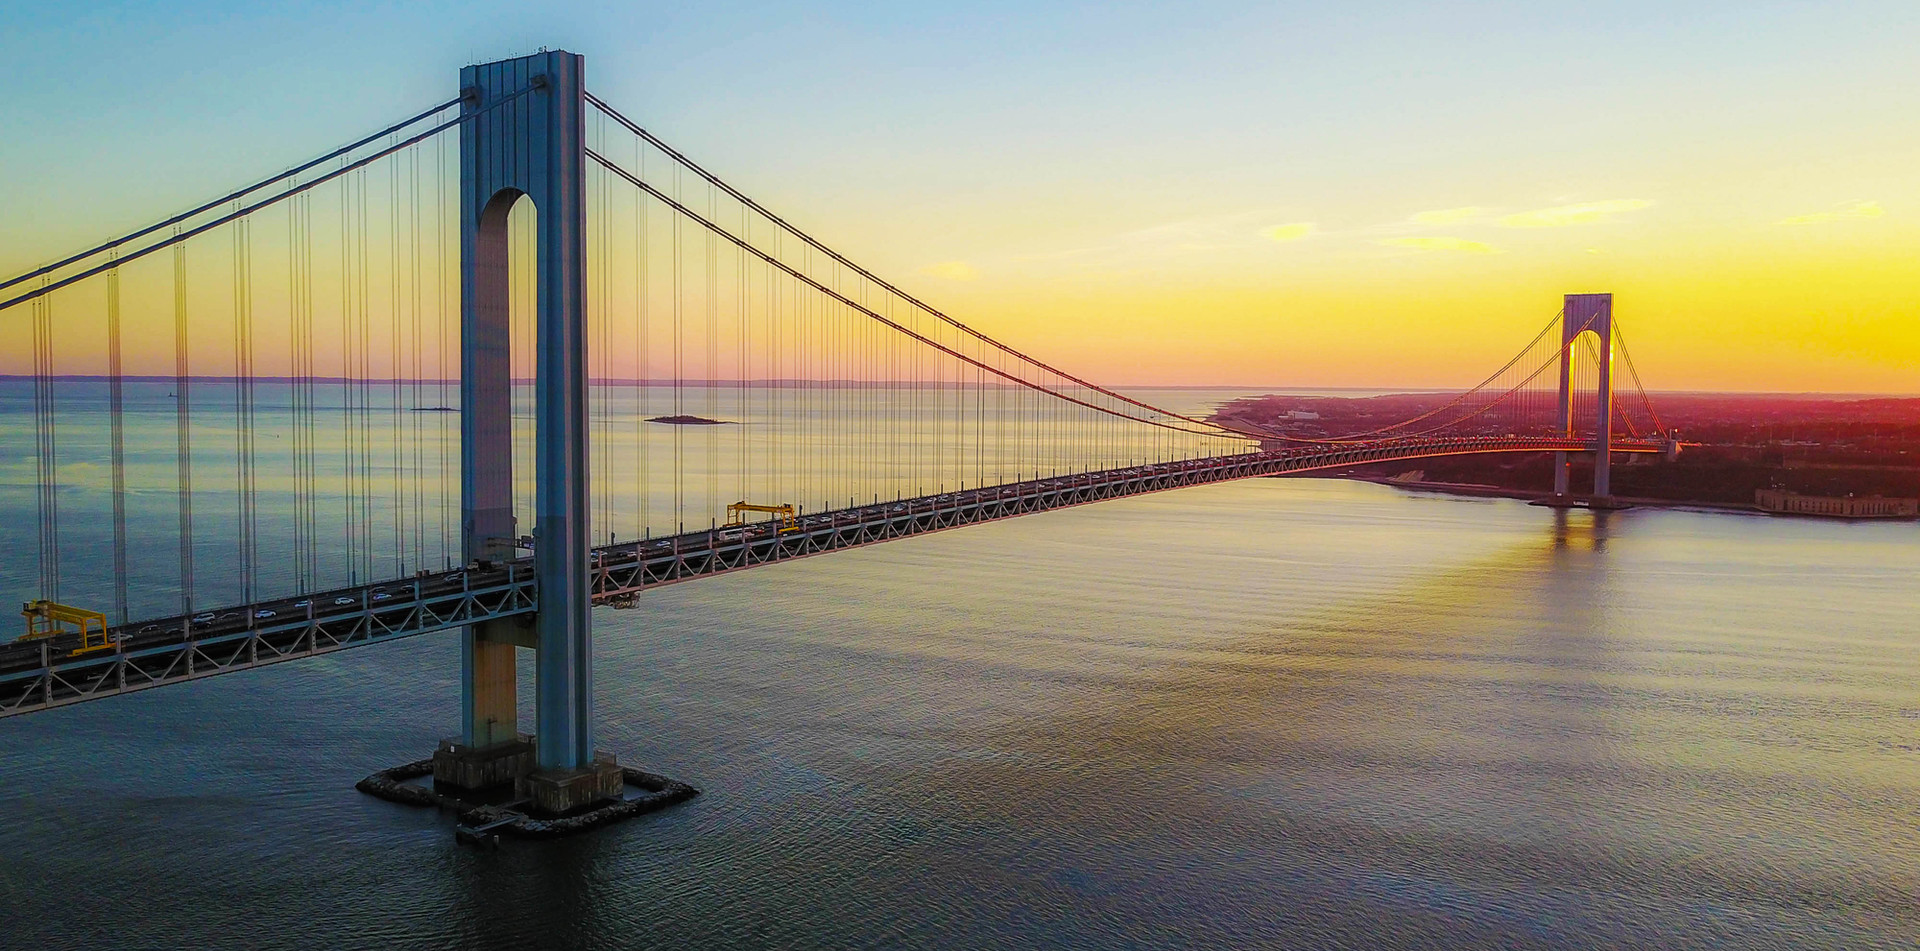 Aerial View of the Verrazano Bridge at Sunset